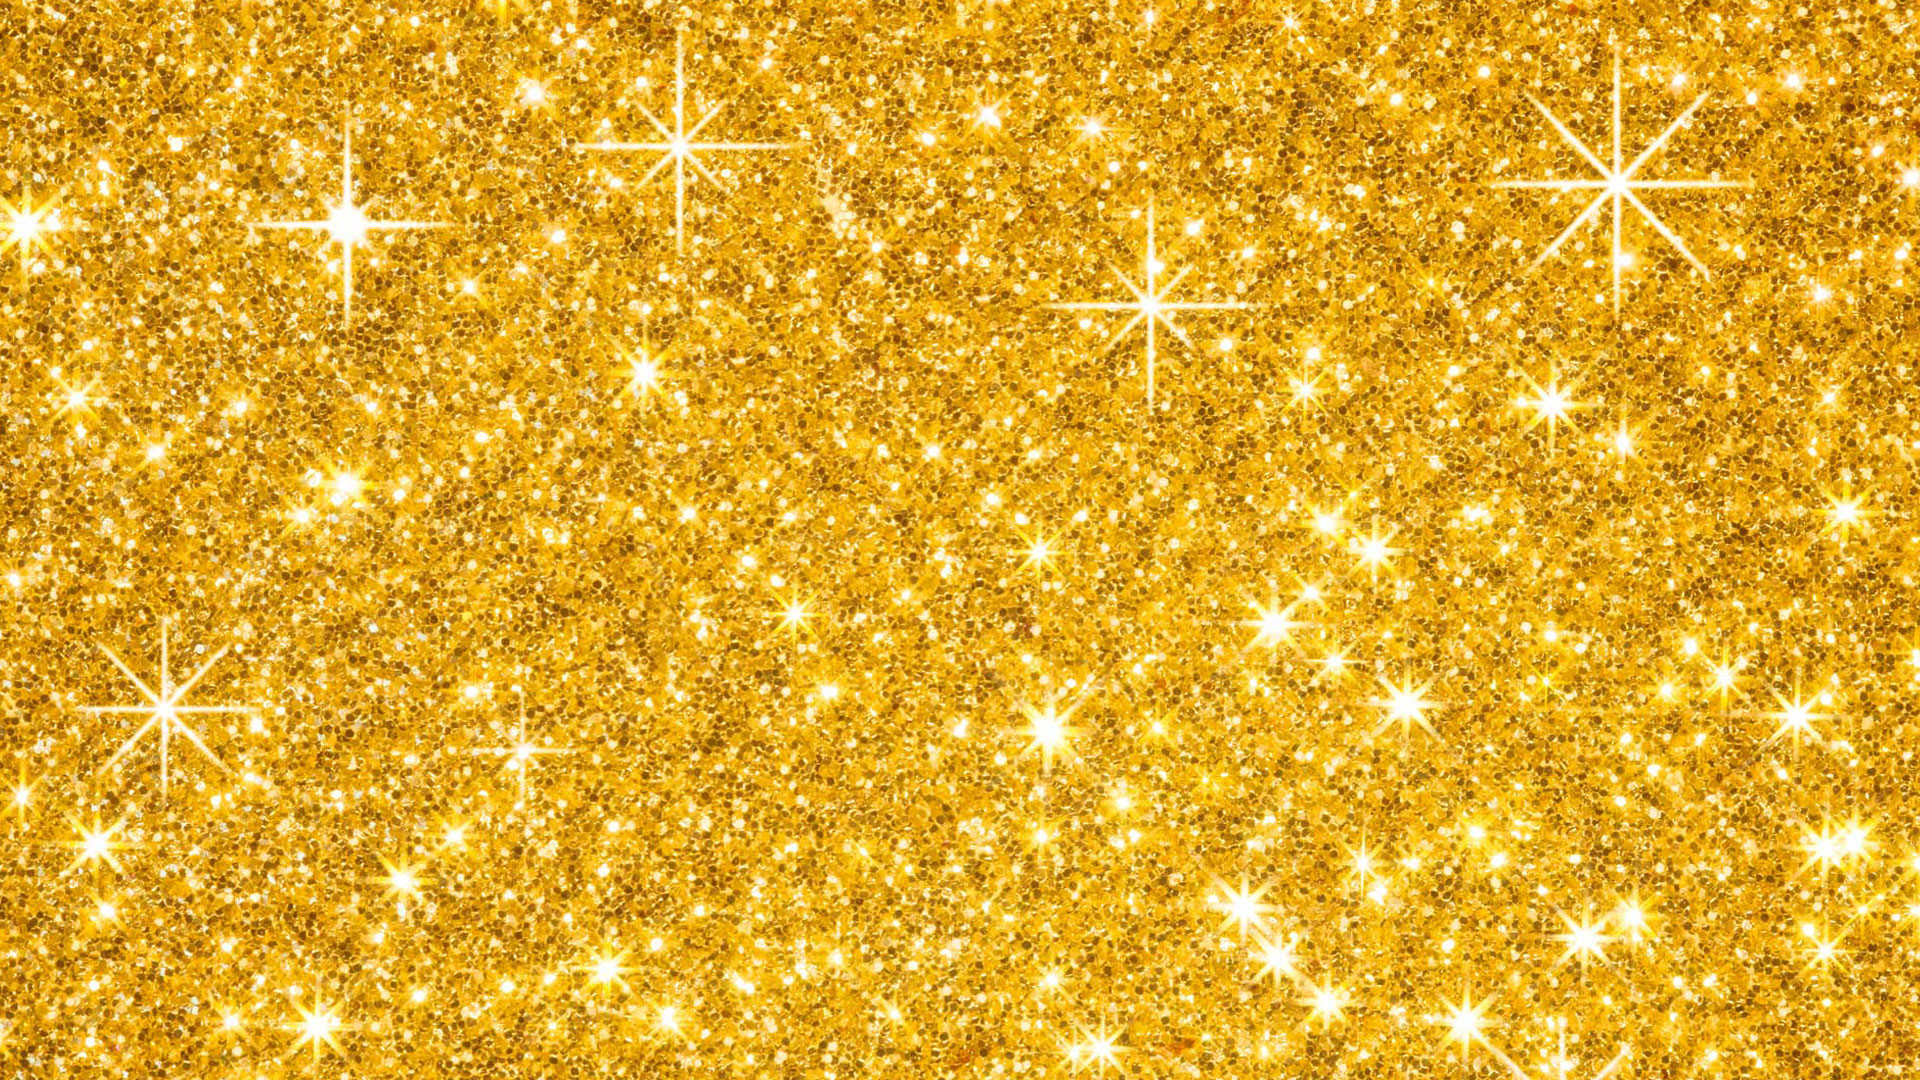 Hd glitter wallpaper 79 images 1920x1080 colorful glitter wallpaper hd cute voltagebd Image collections